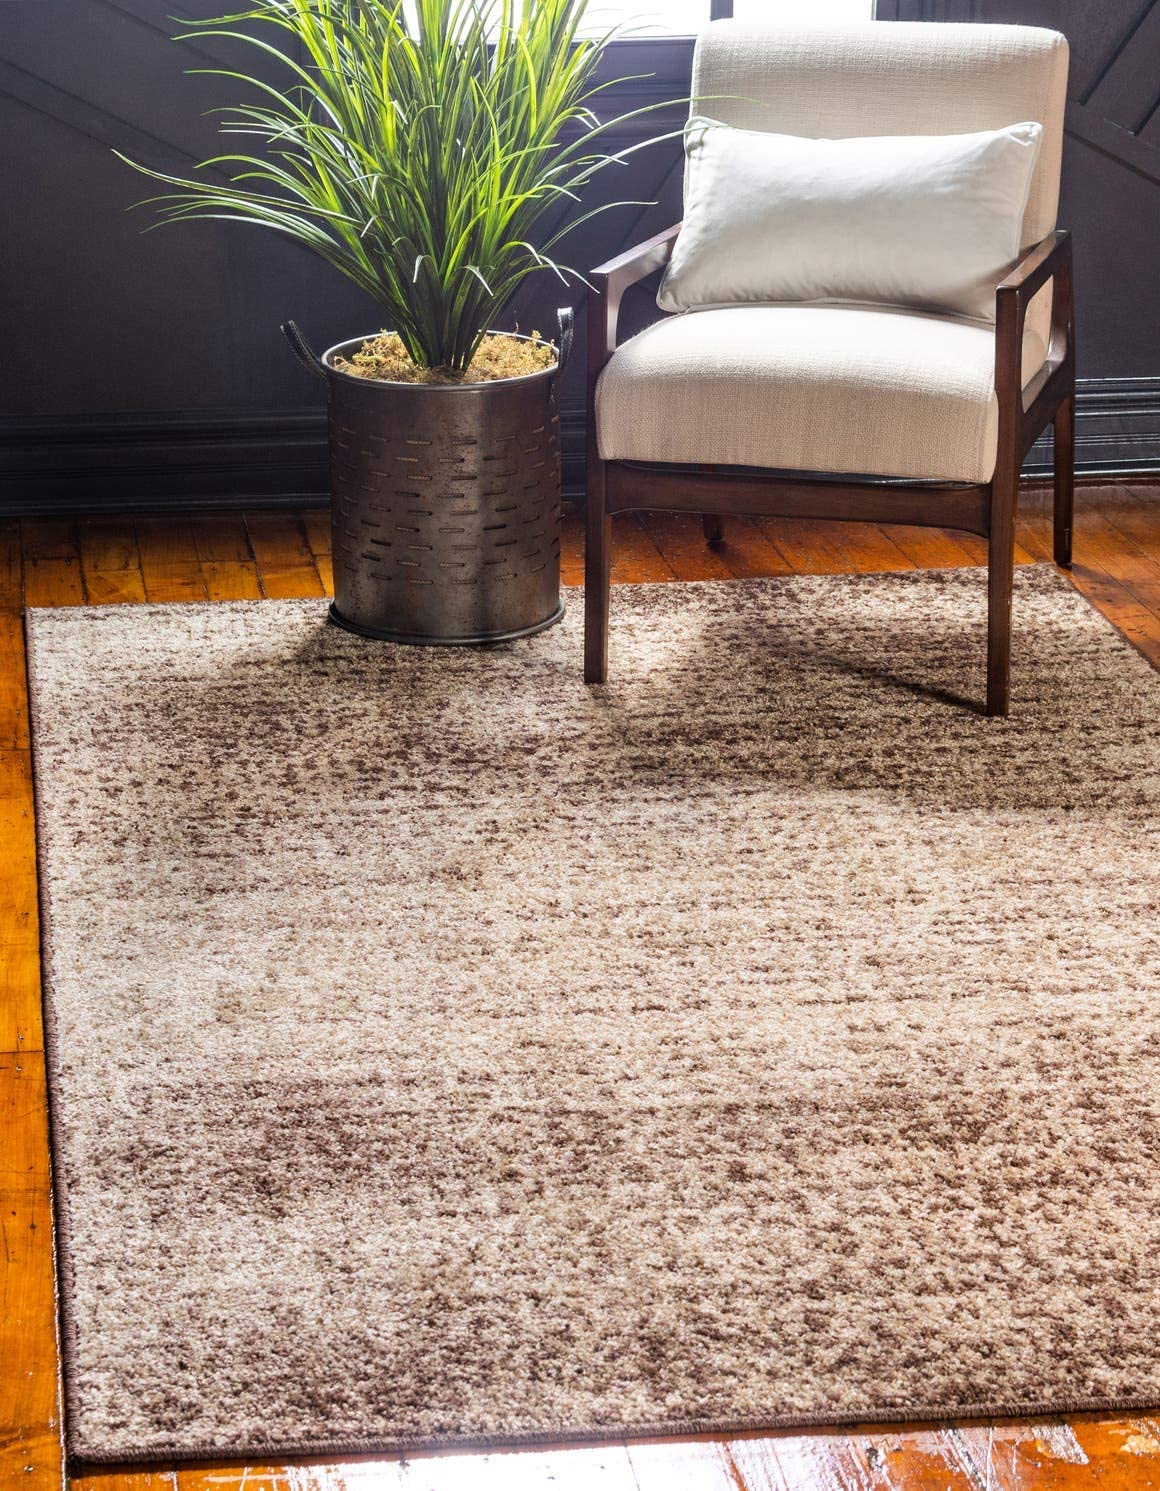 Unique Loom Autumn Collection Rustic Casual Warm Toned Beige Area Rug 8 0 x 10 0